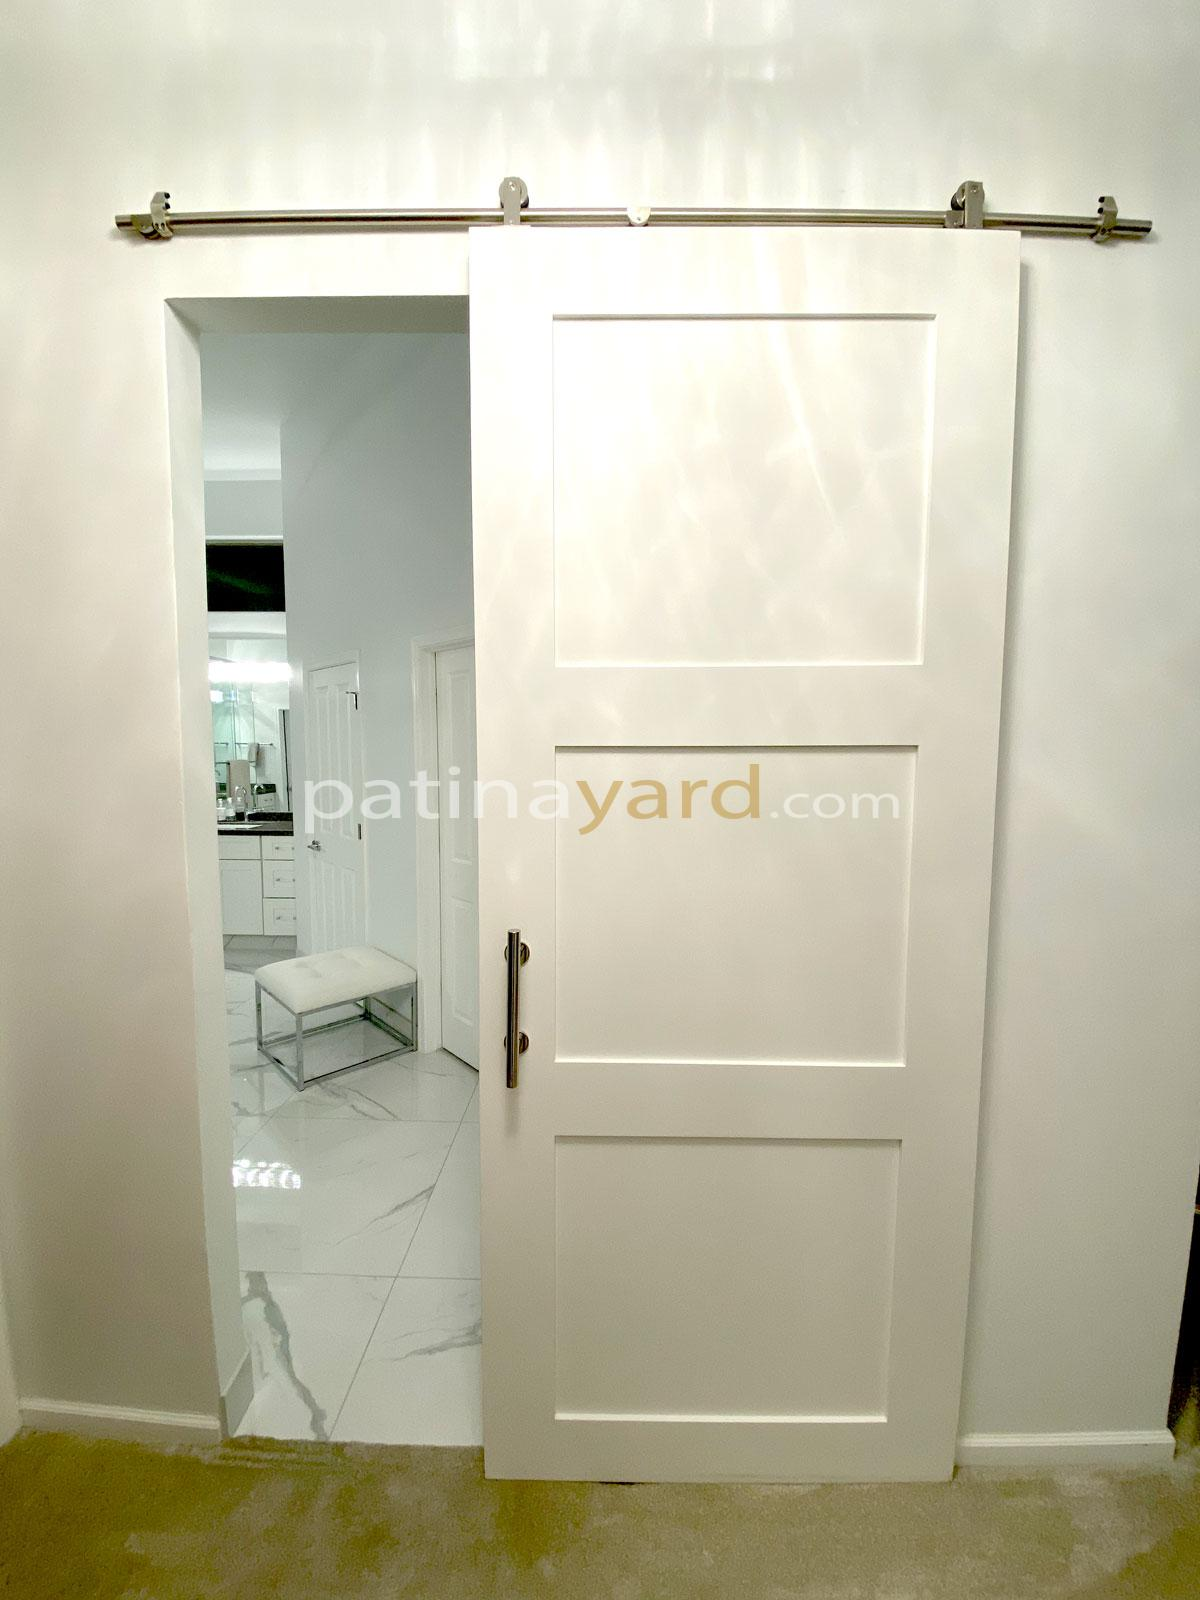 painted white shaker style barn door with stainless steel hardware